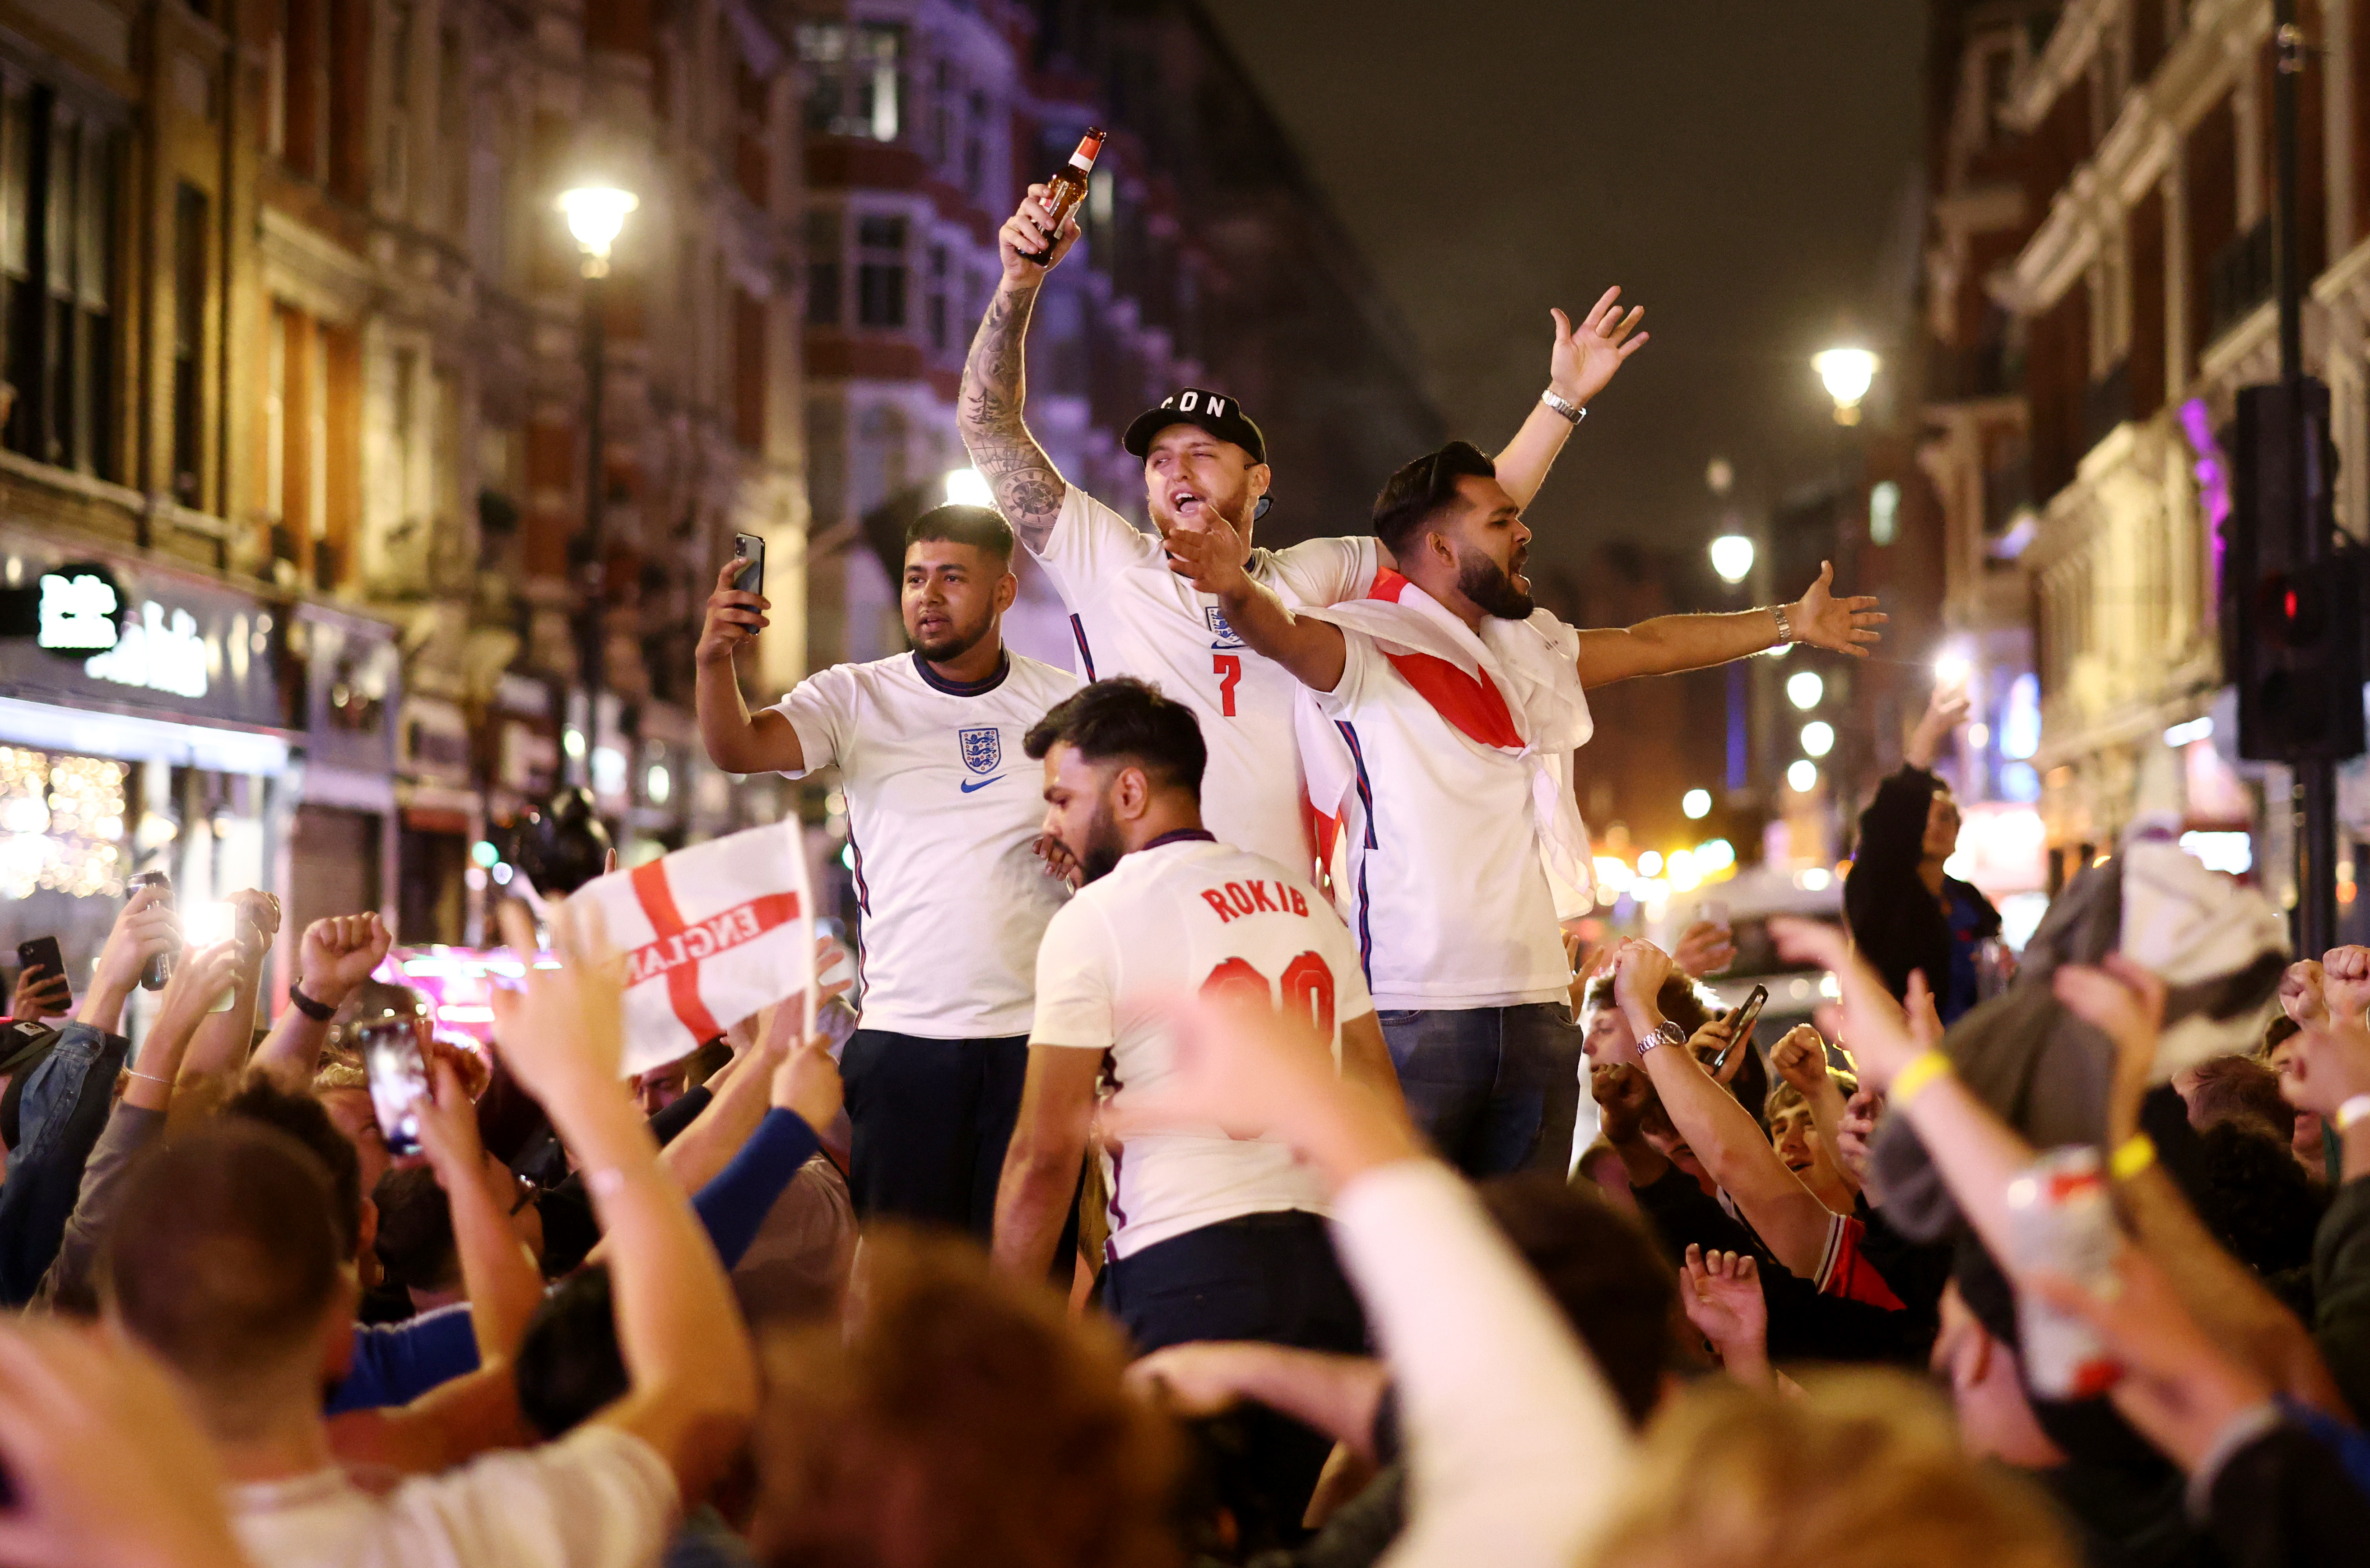 Soccer Football - Euro 2020 - Fans gather for England v Denmark - London, Britain - July 7, 2021 Fans celebrate after the match REUTERS/Henry Nicholls